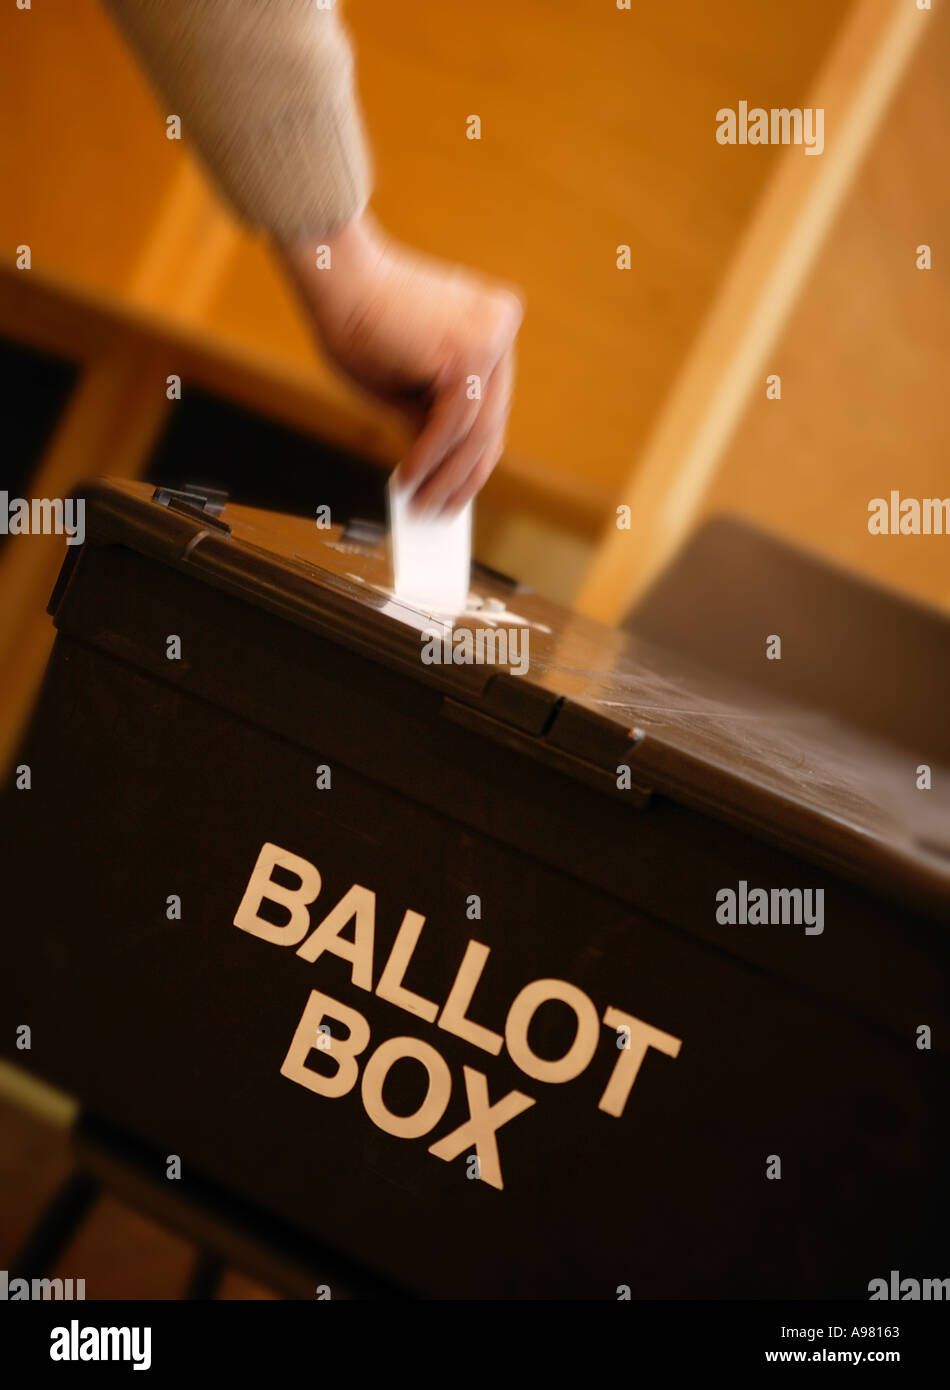 WHITE MALE HAND PLACING VOTE IN BALLOT BOX AT POLLING STATION - Stock Image